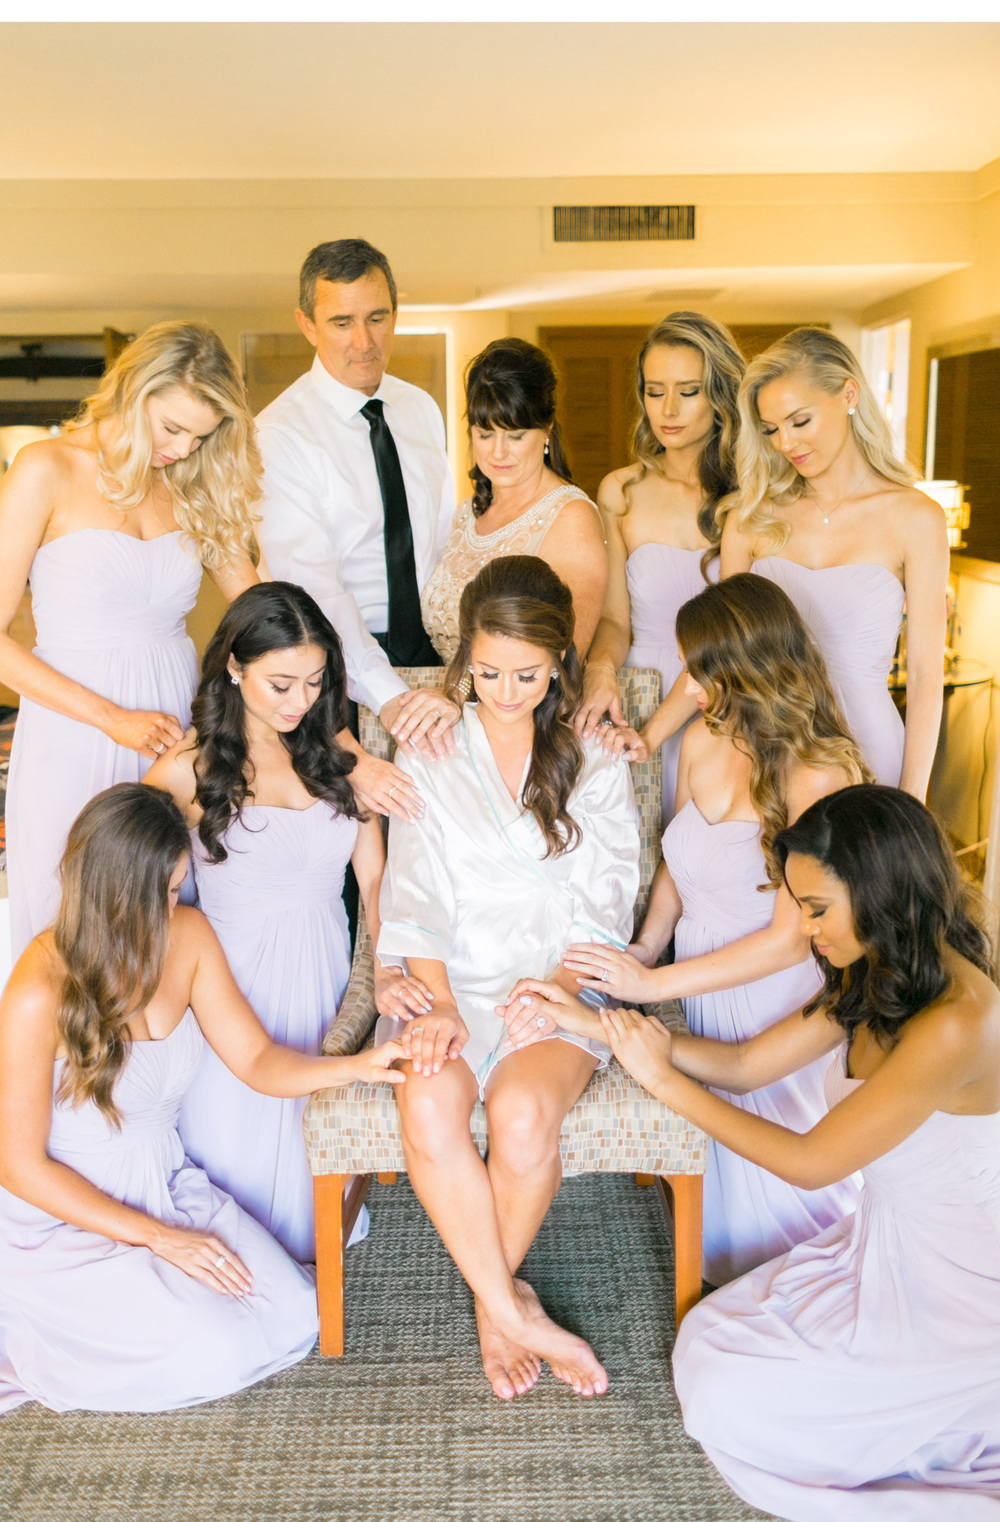 Nia-Sanchez-Wedding-Miss-USA-Natalie-Schutt-Photography_02.jpg